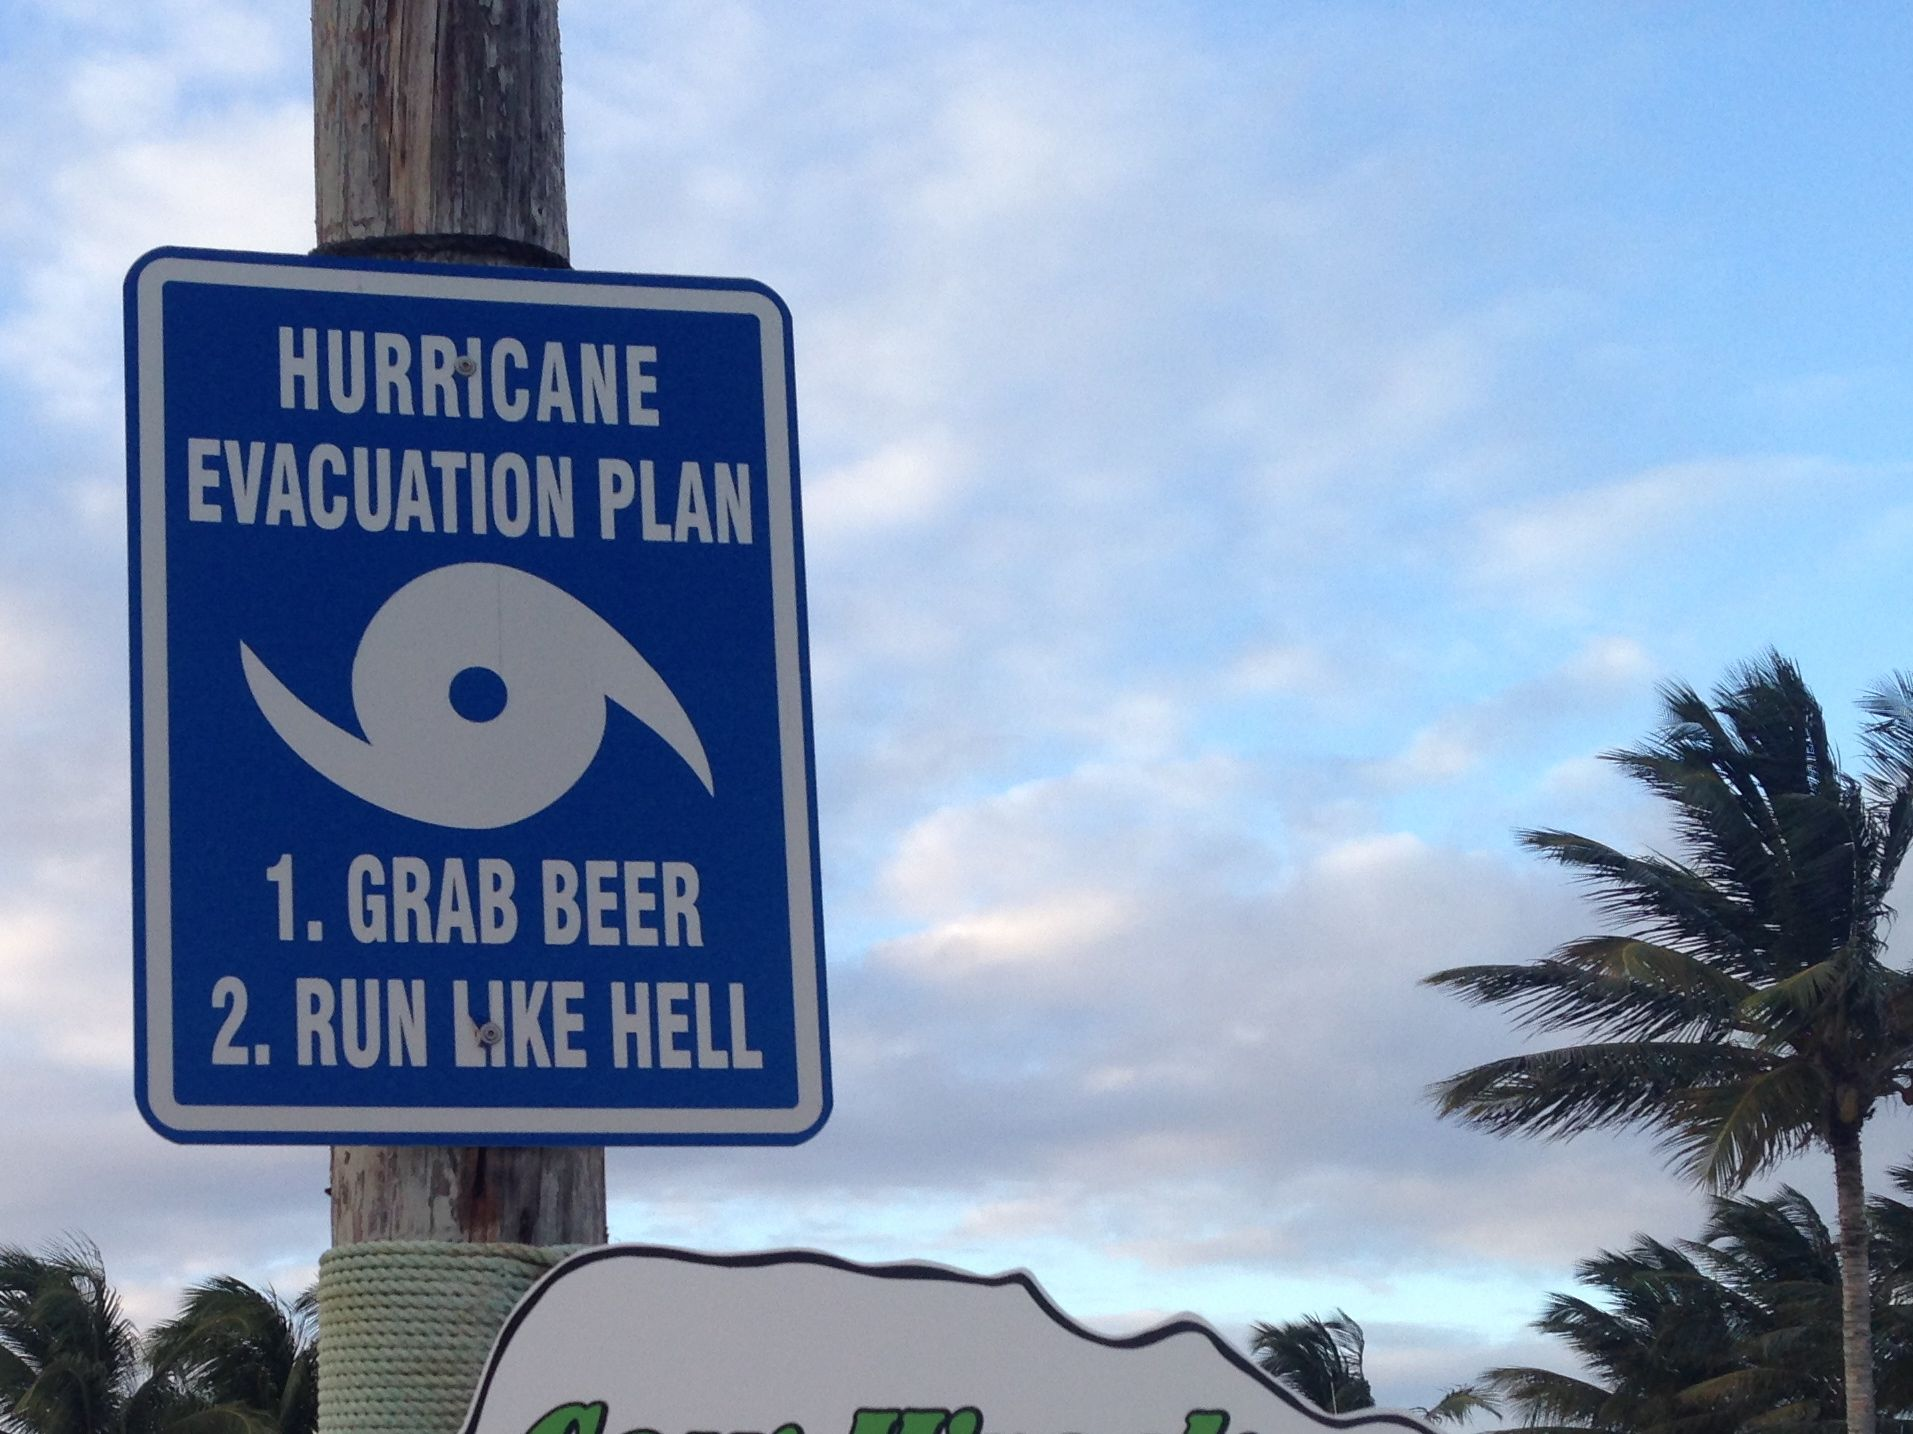 Hurricane Evacuation Plan